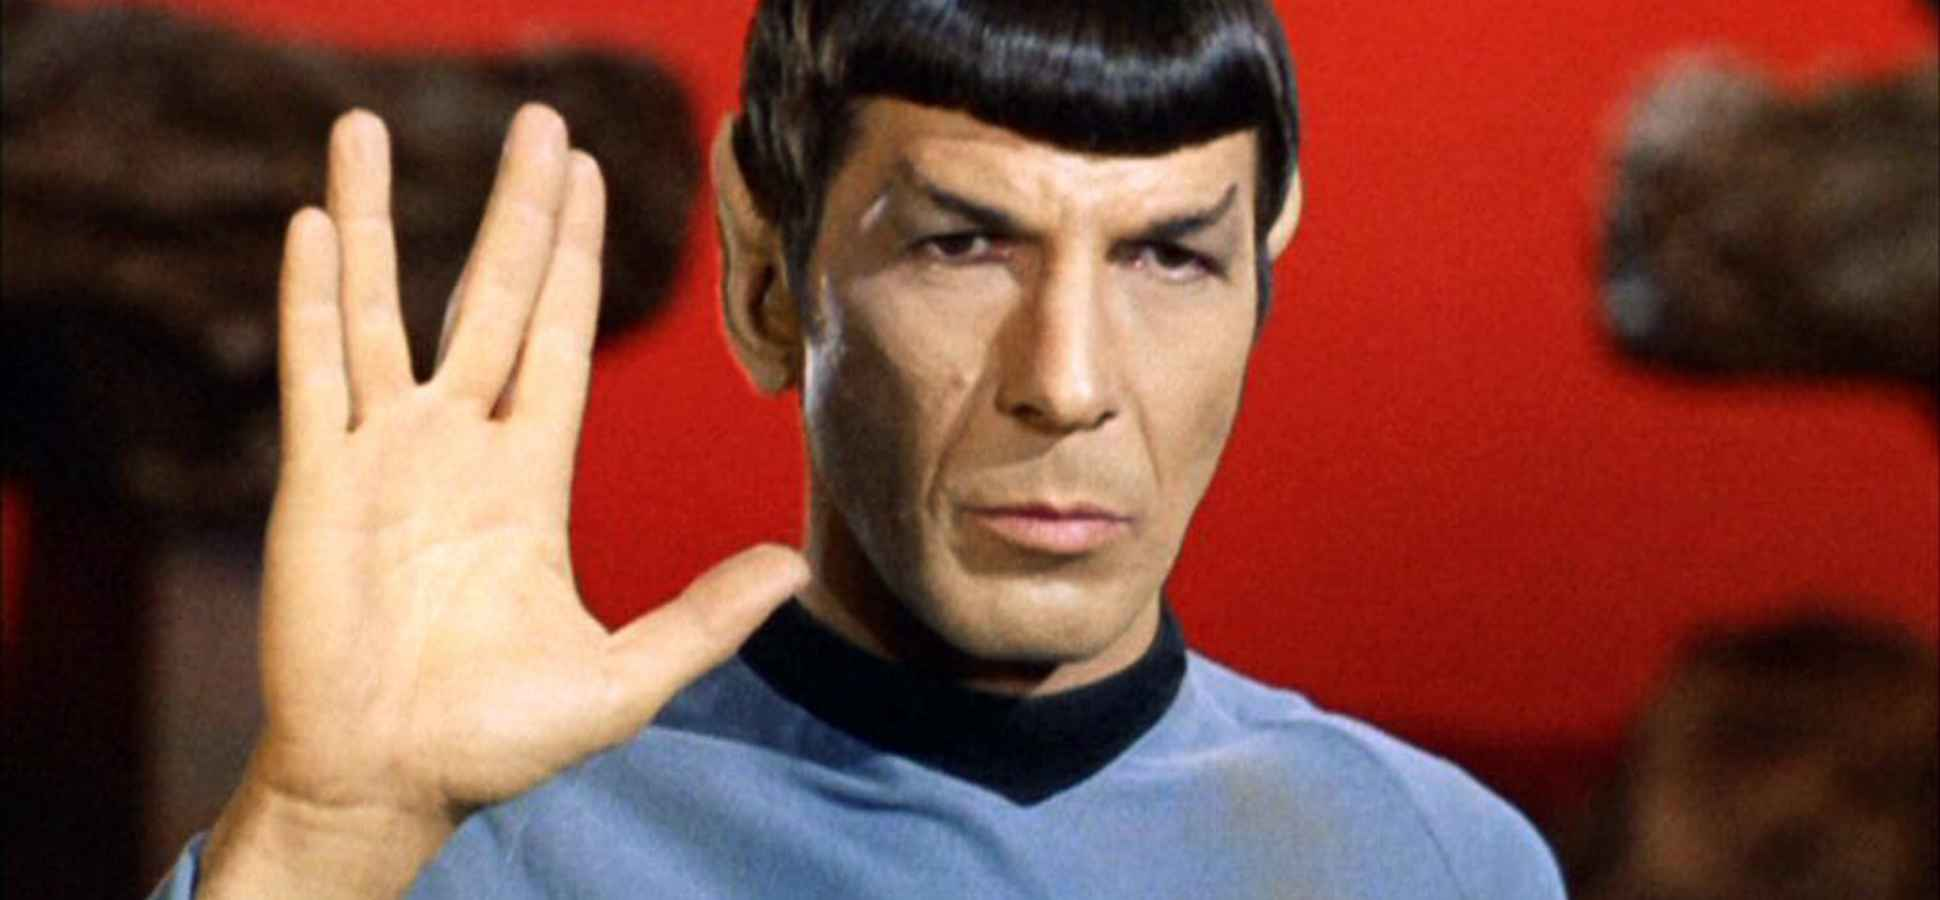 7 Illogical Statements that Smart People Never Make